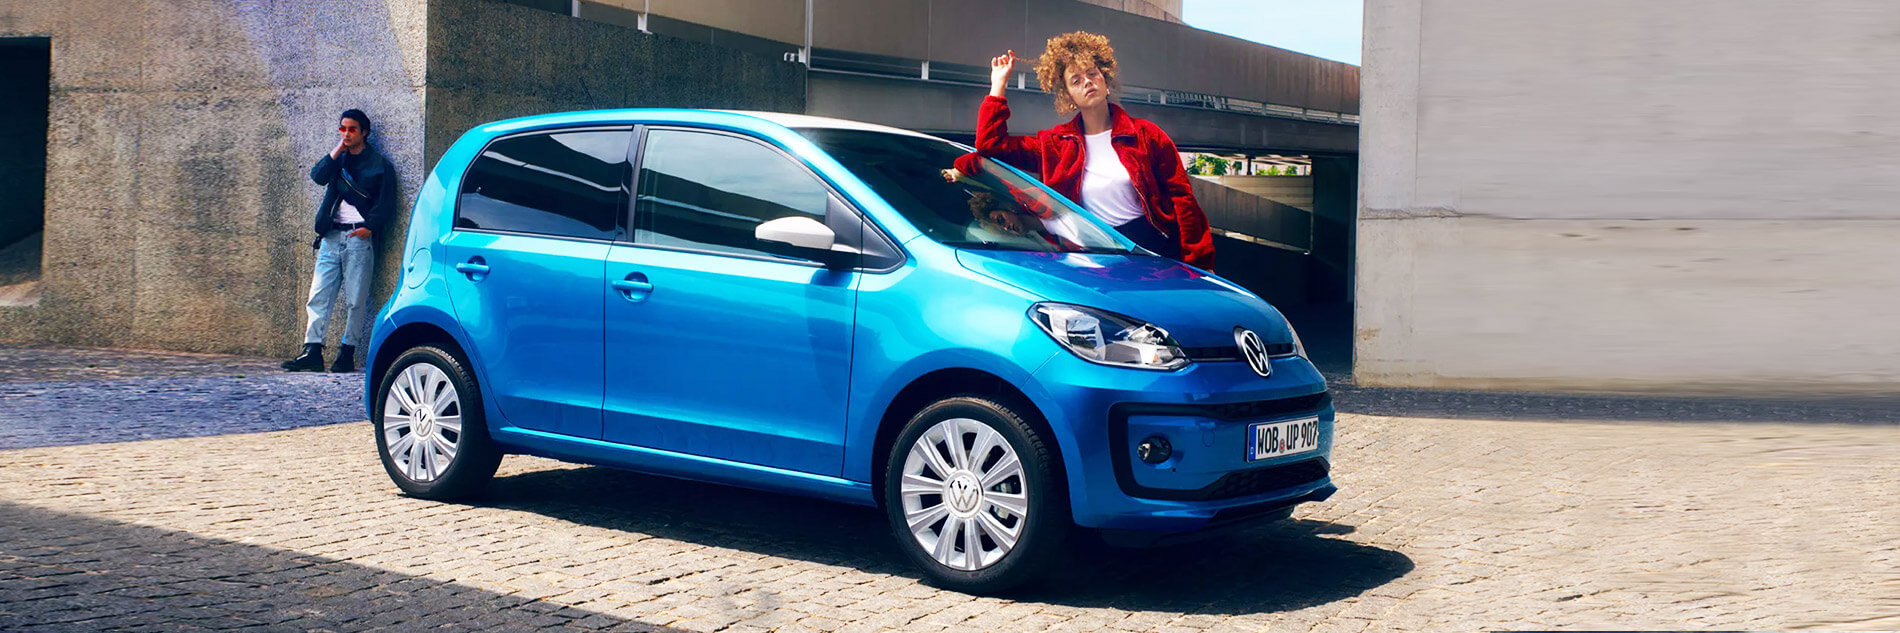 Volkswagen-up-header-1900x633